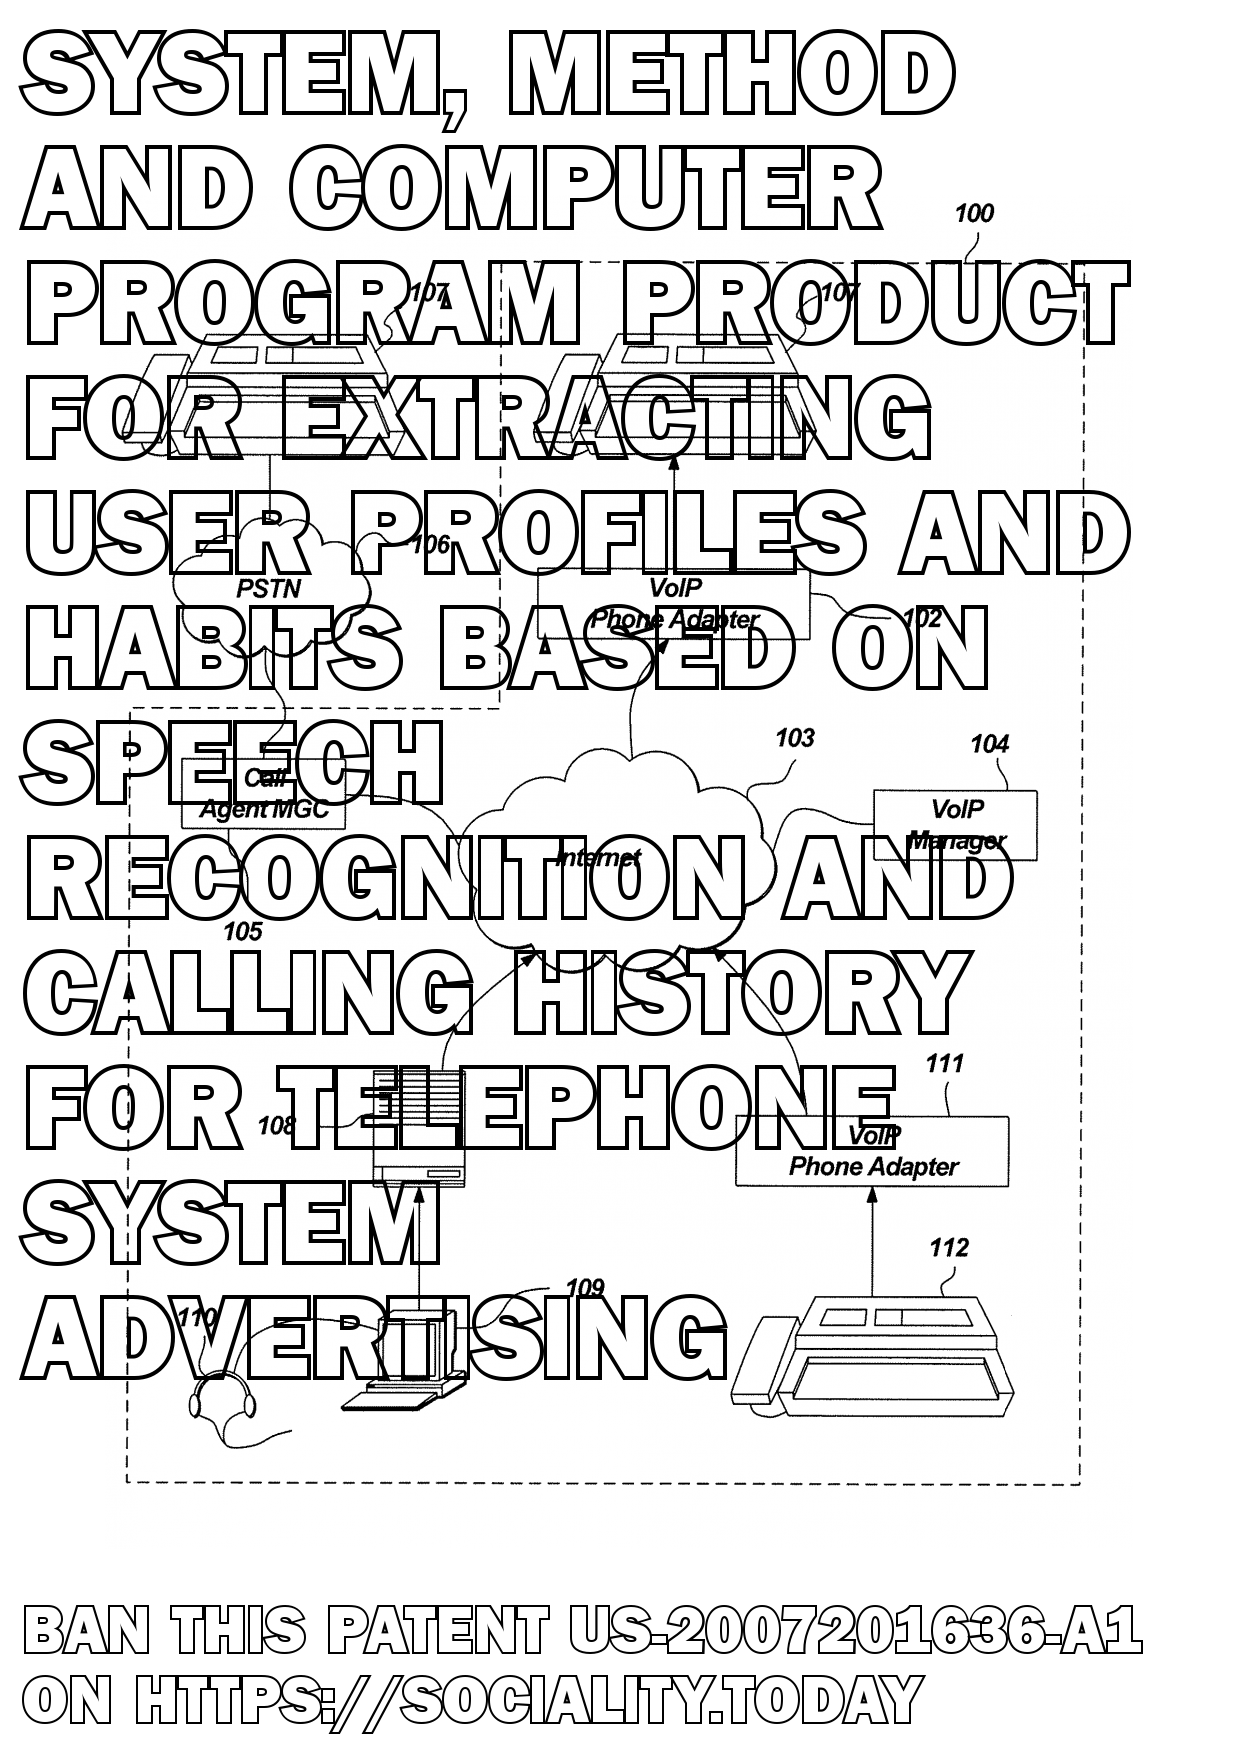 System, method and computer program product for extracting user profiles and habits based on speech recognition and calling history for telephone system advertising  - US-2007201636-A1